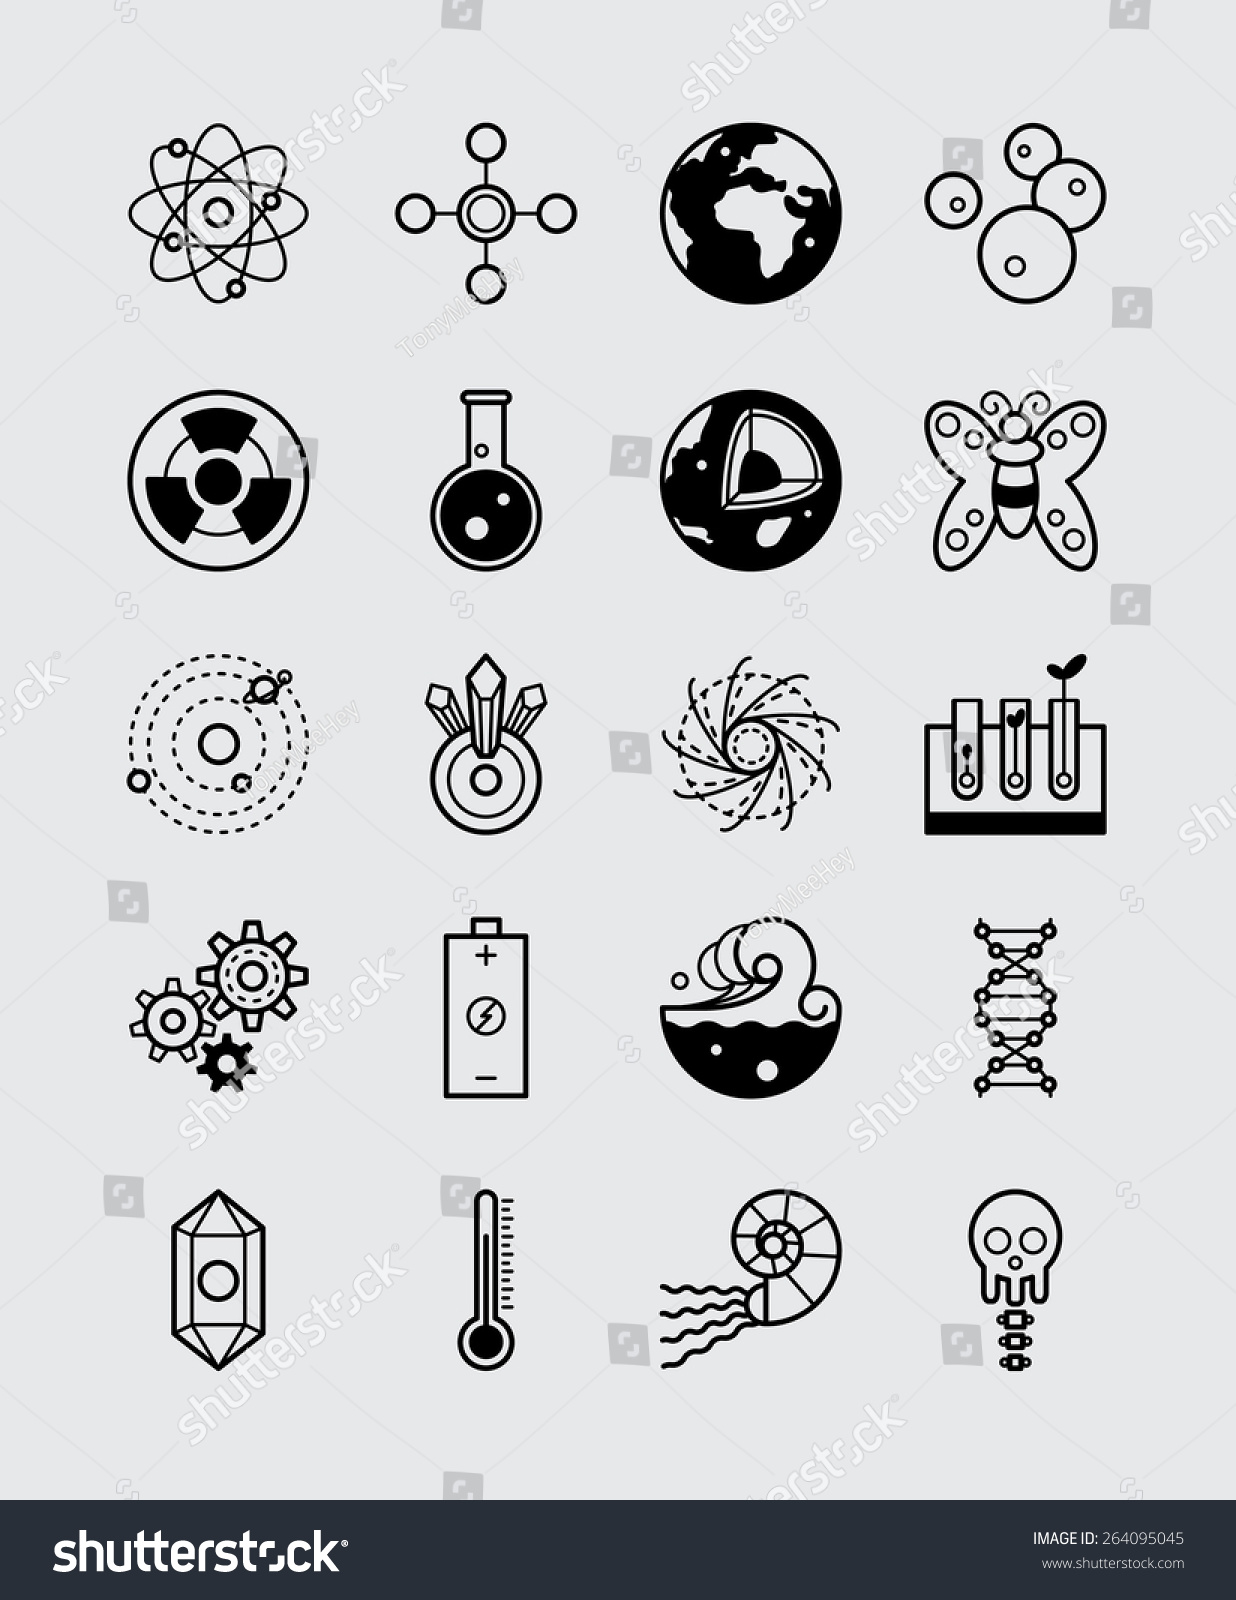 20 Science Icons Branches Science Black Stock Vector Royalty Free 264095045